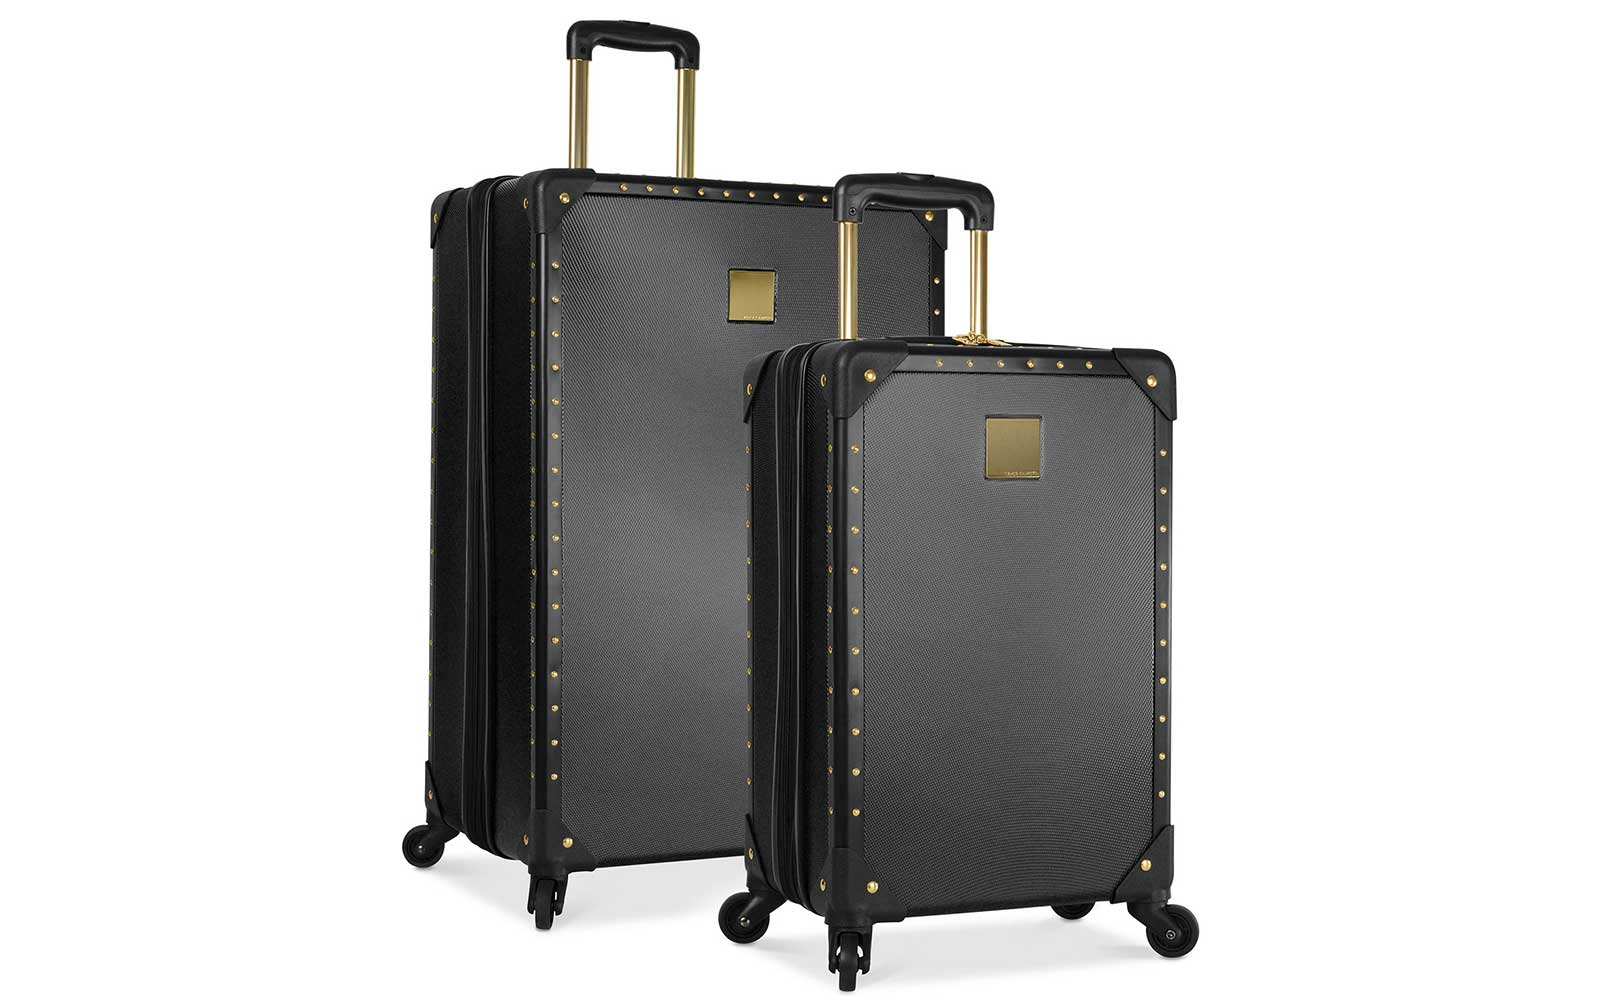 Vinca Camuto luggage set